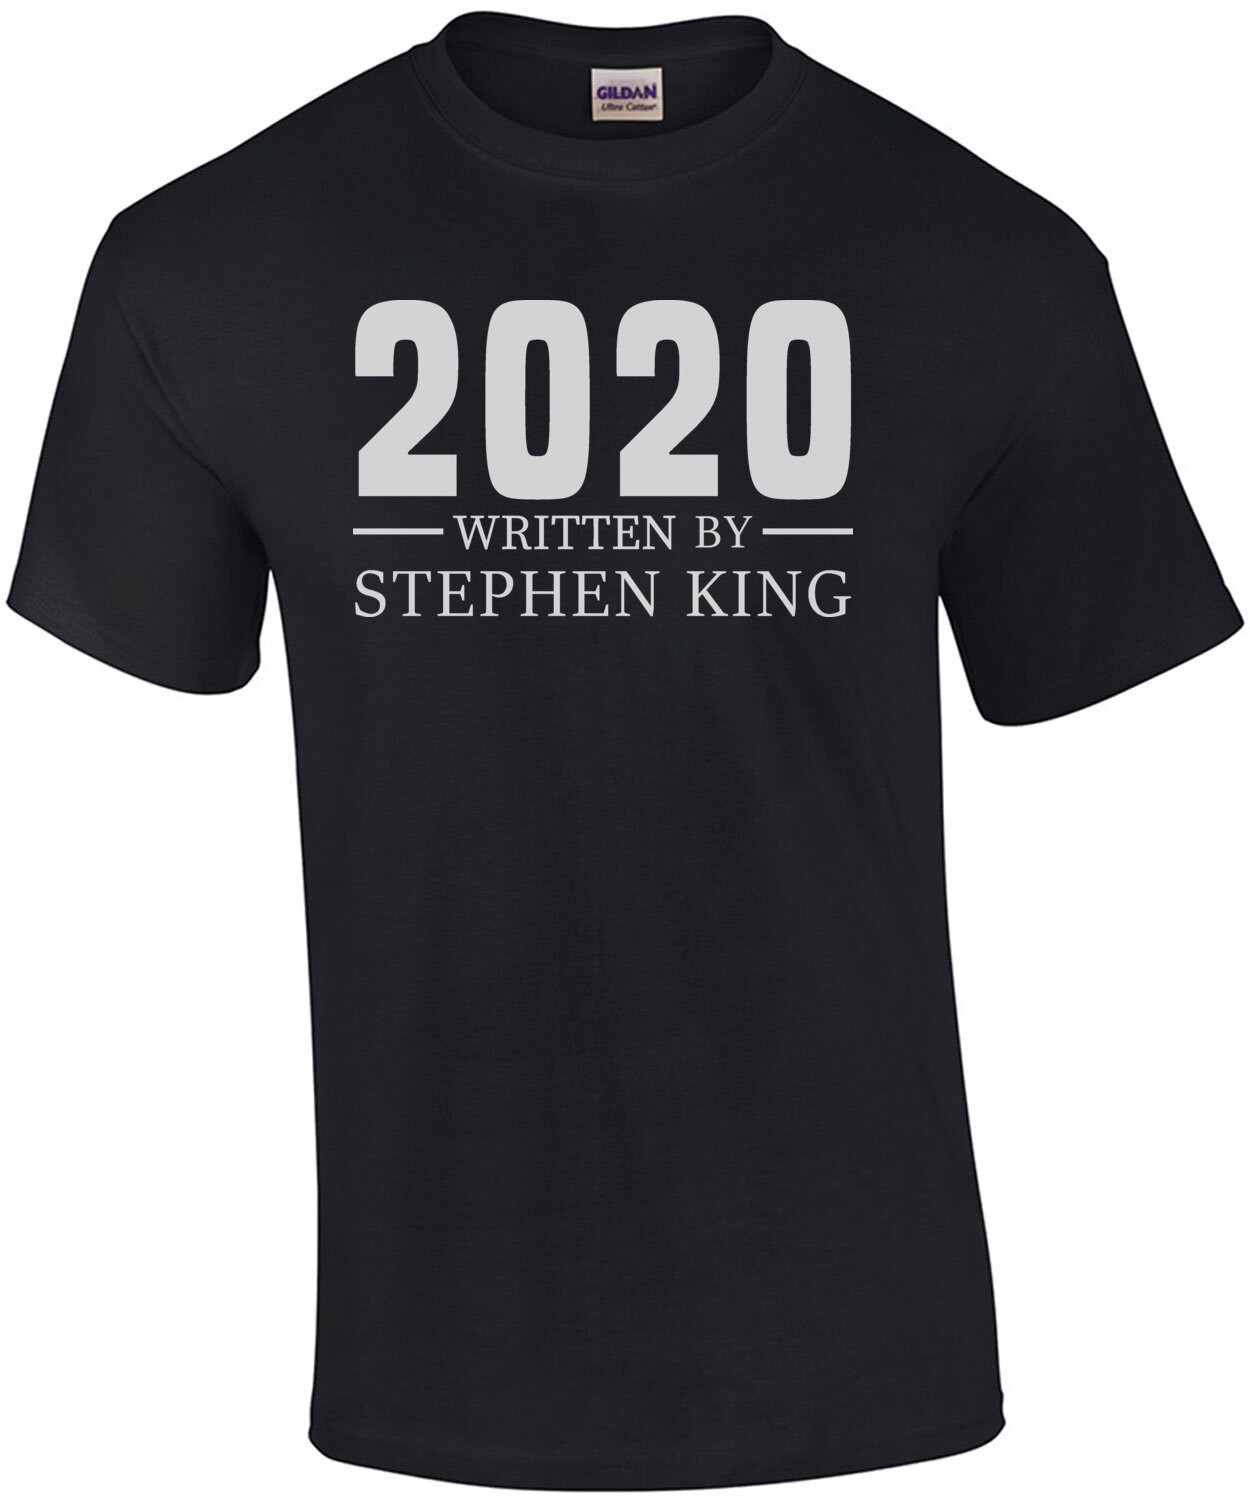 2020 Written By Stephen King - Funny Covid-19 T-Shirt